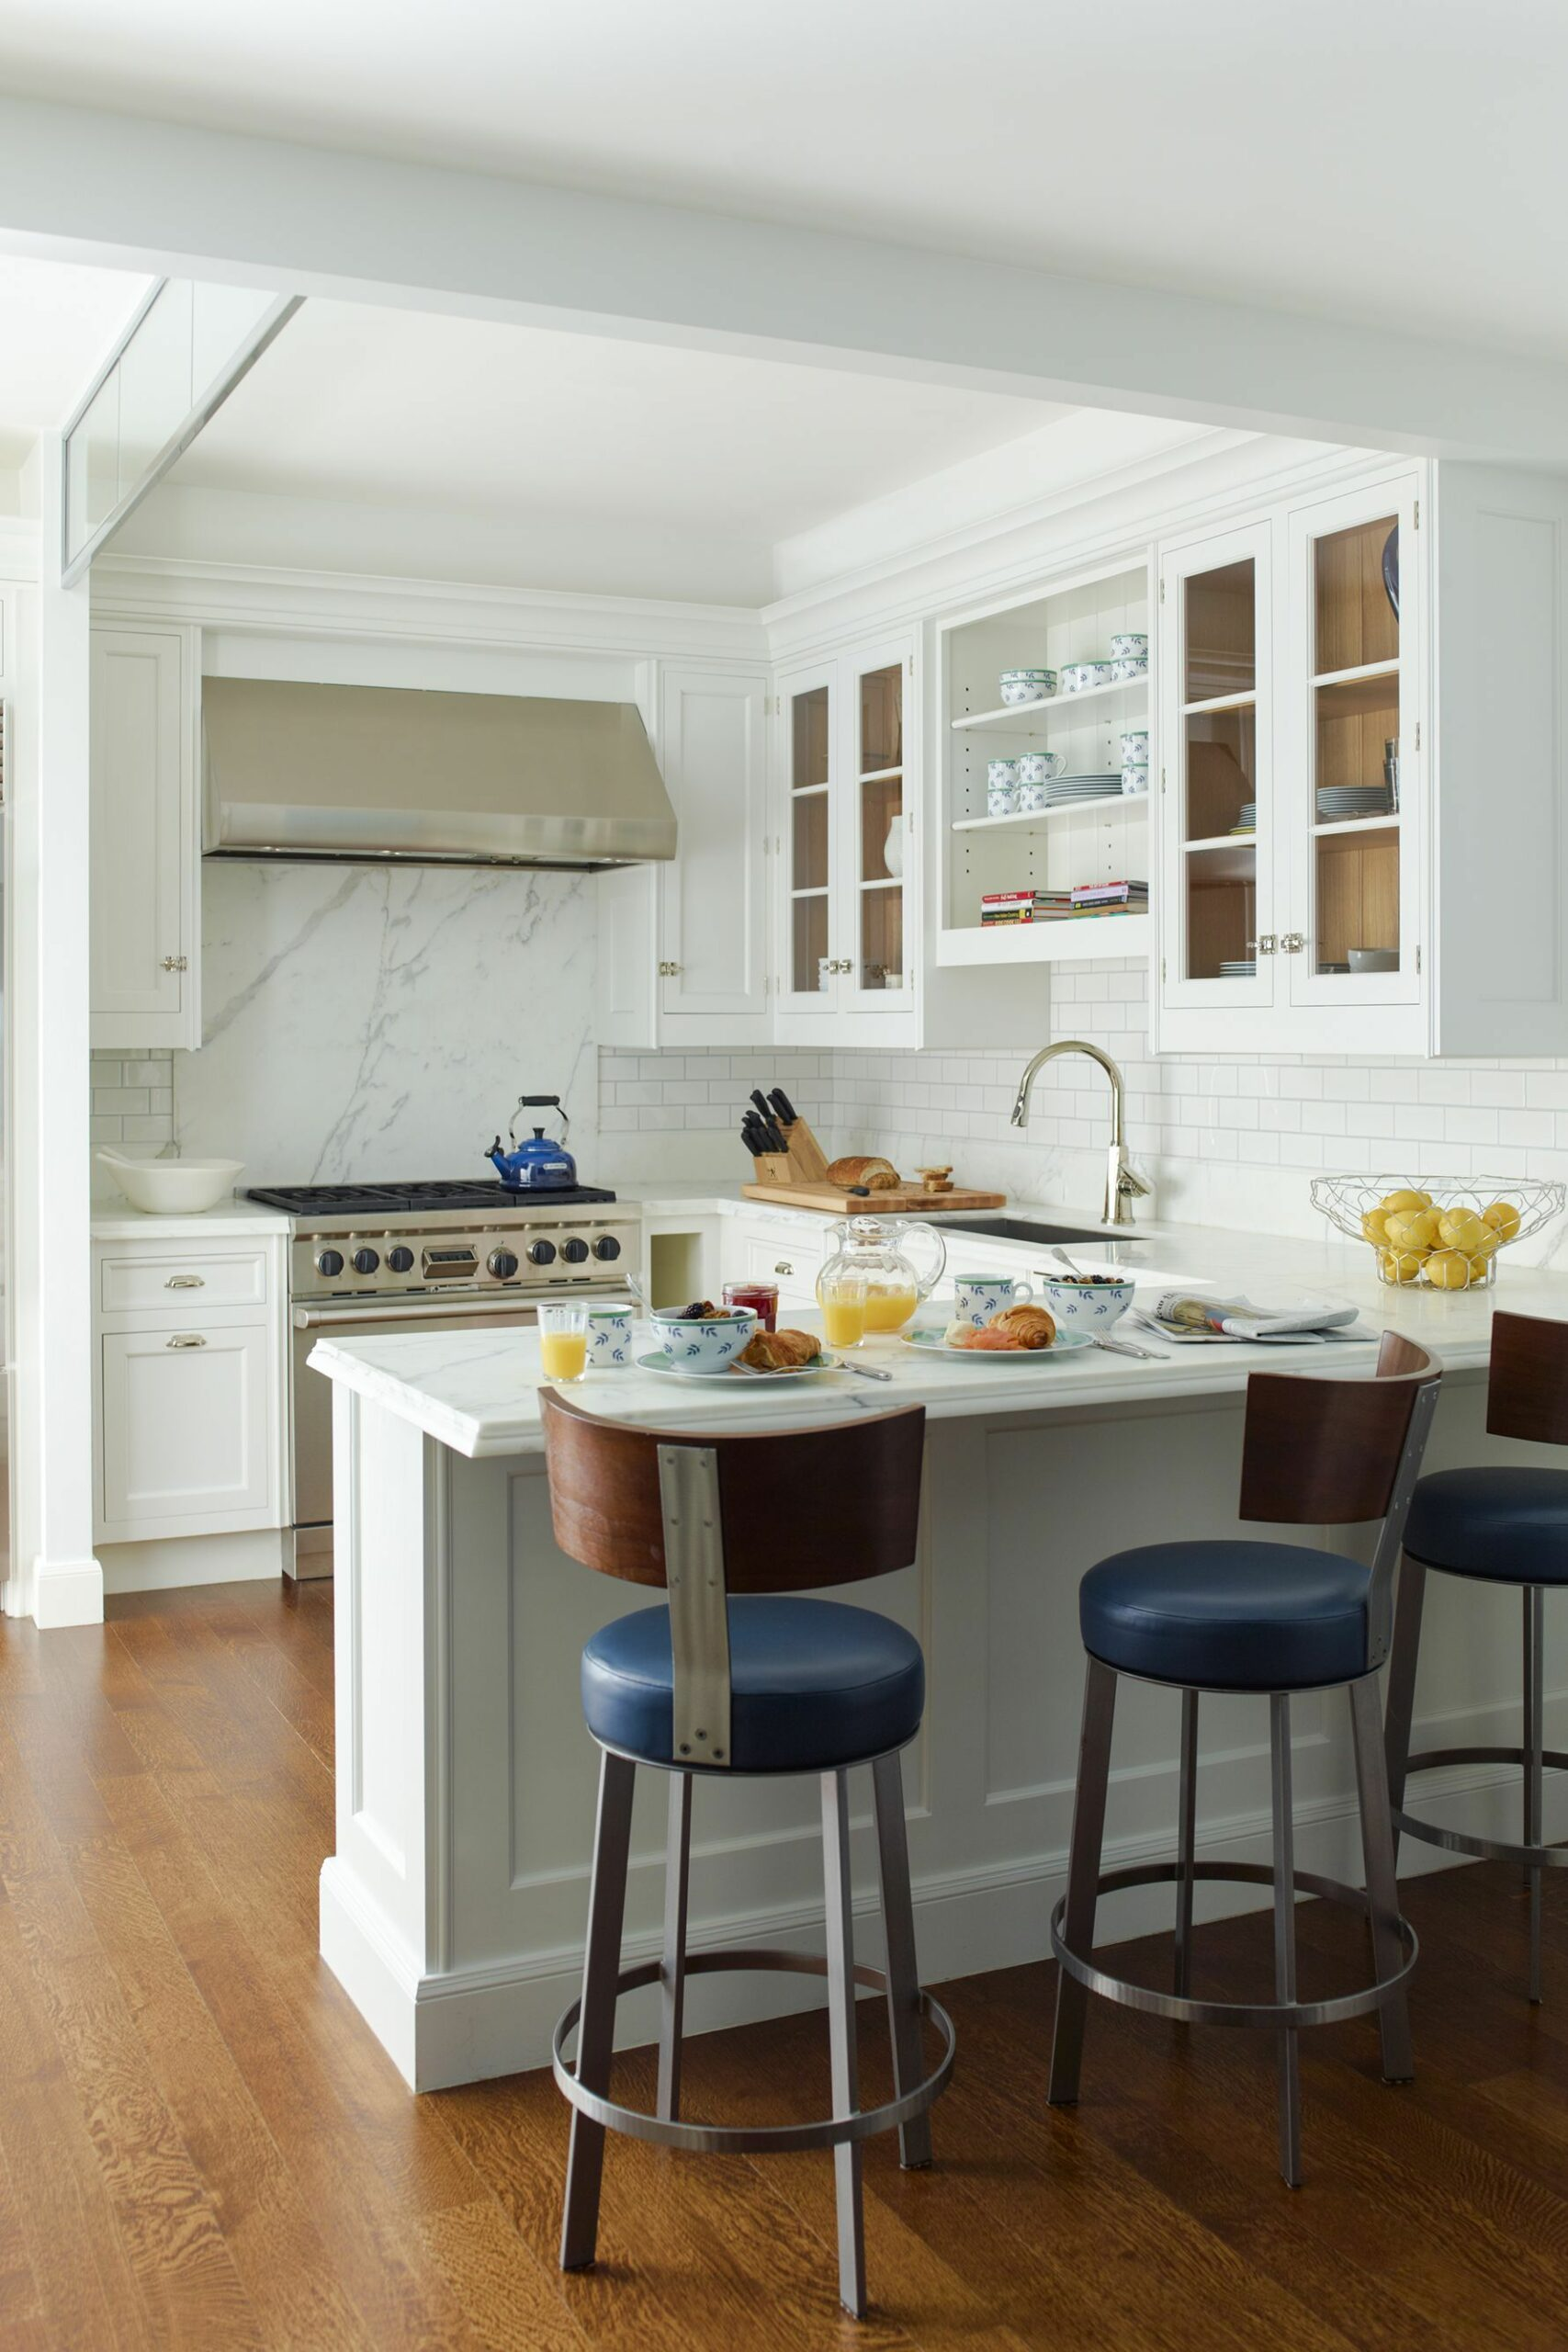 Images Of Small Kitchens With Peninsulas